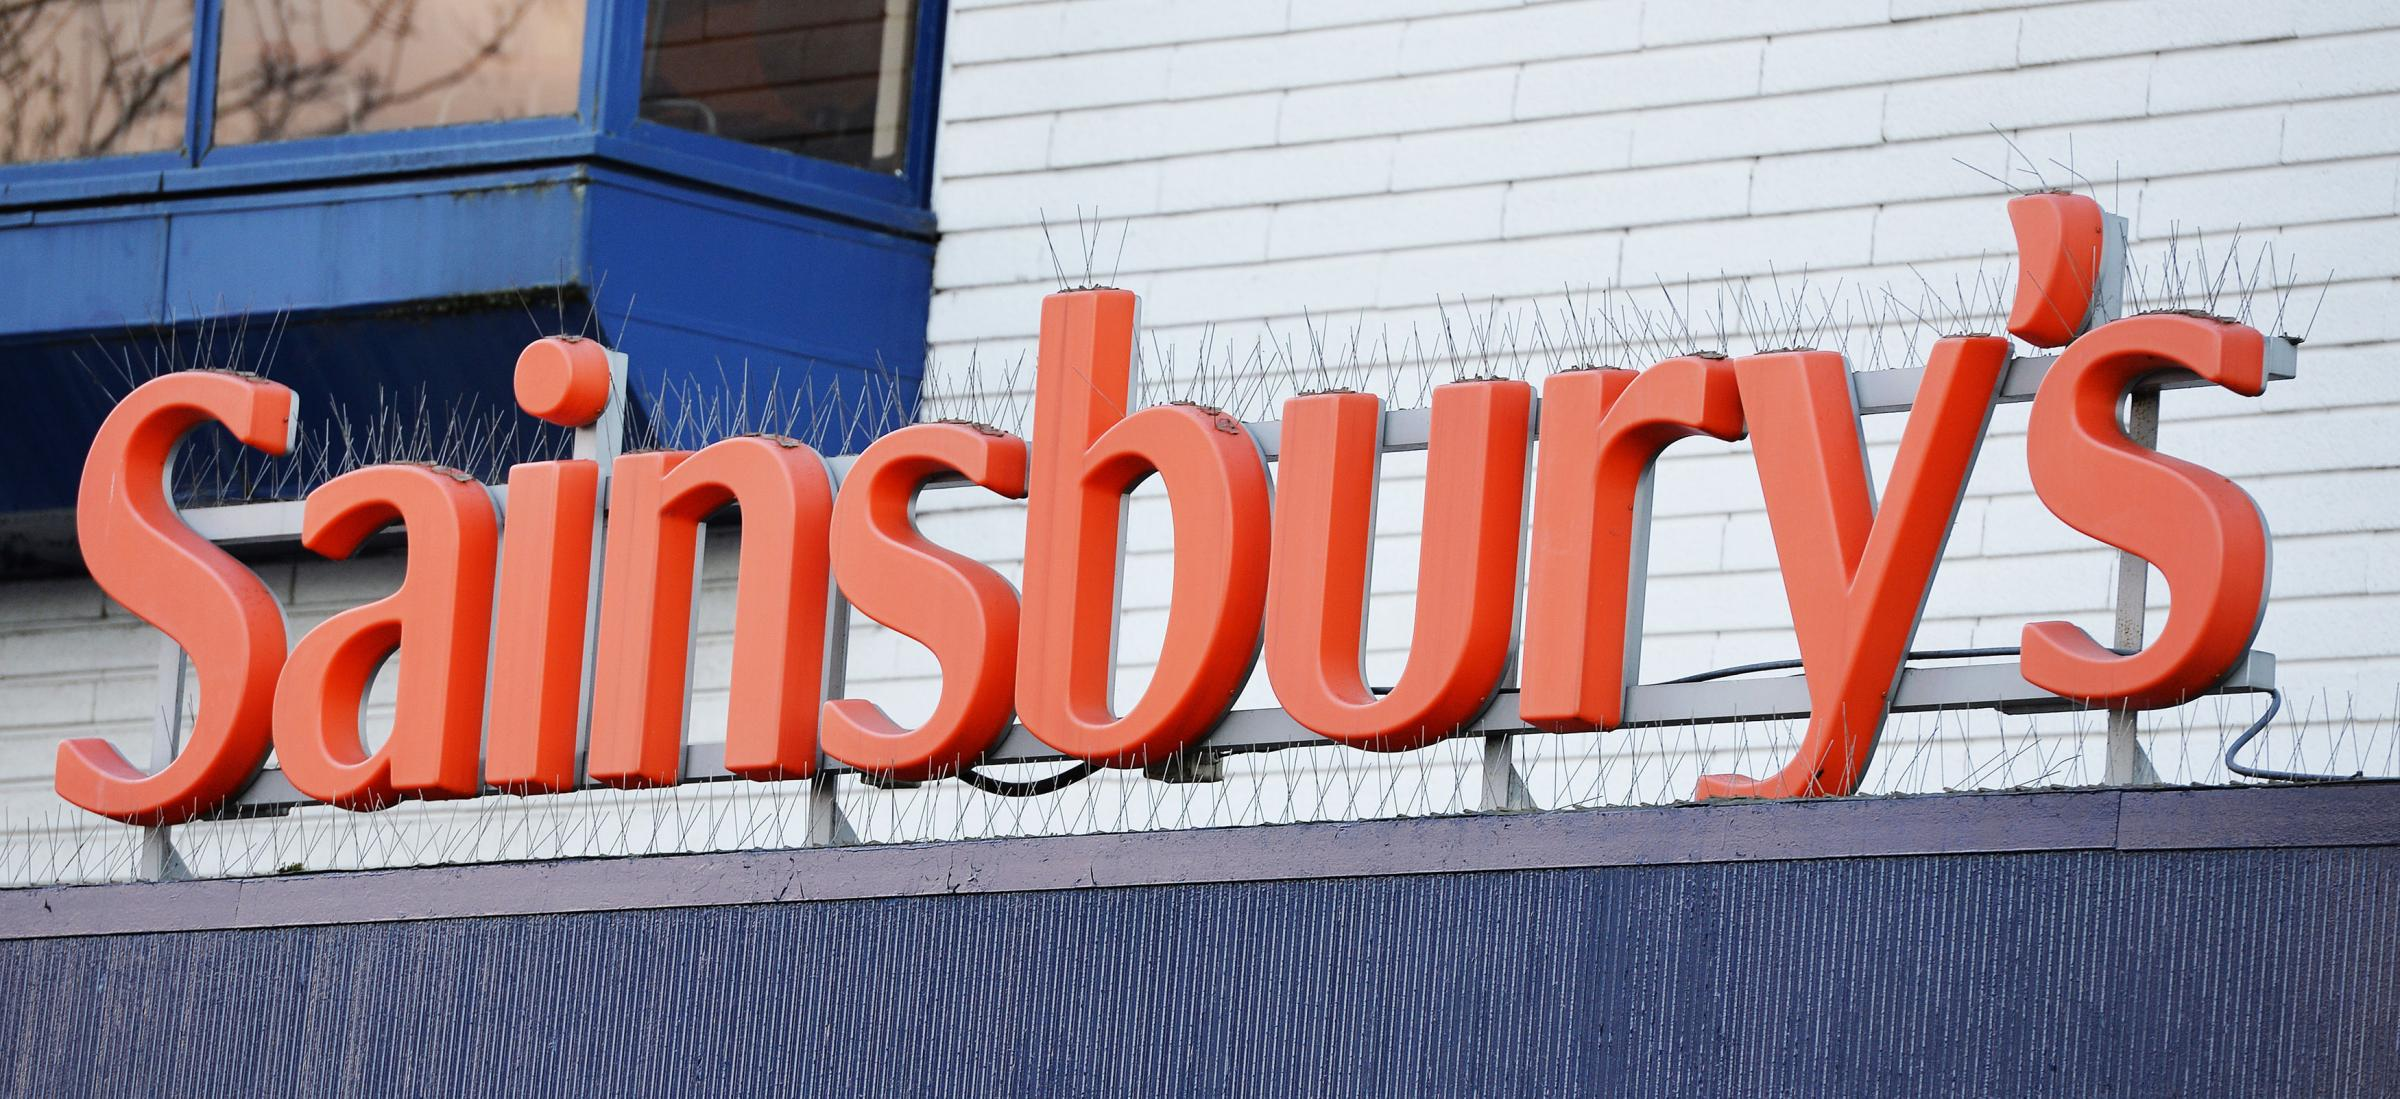 Sainsbury's has announced a management shake-up which is putting thousands of jobs at risk. Photo: John Stillwell/PA